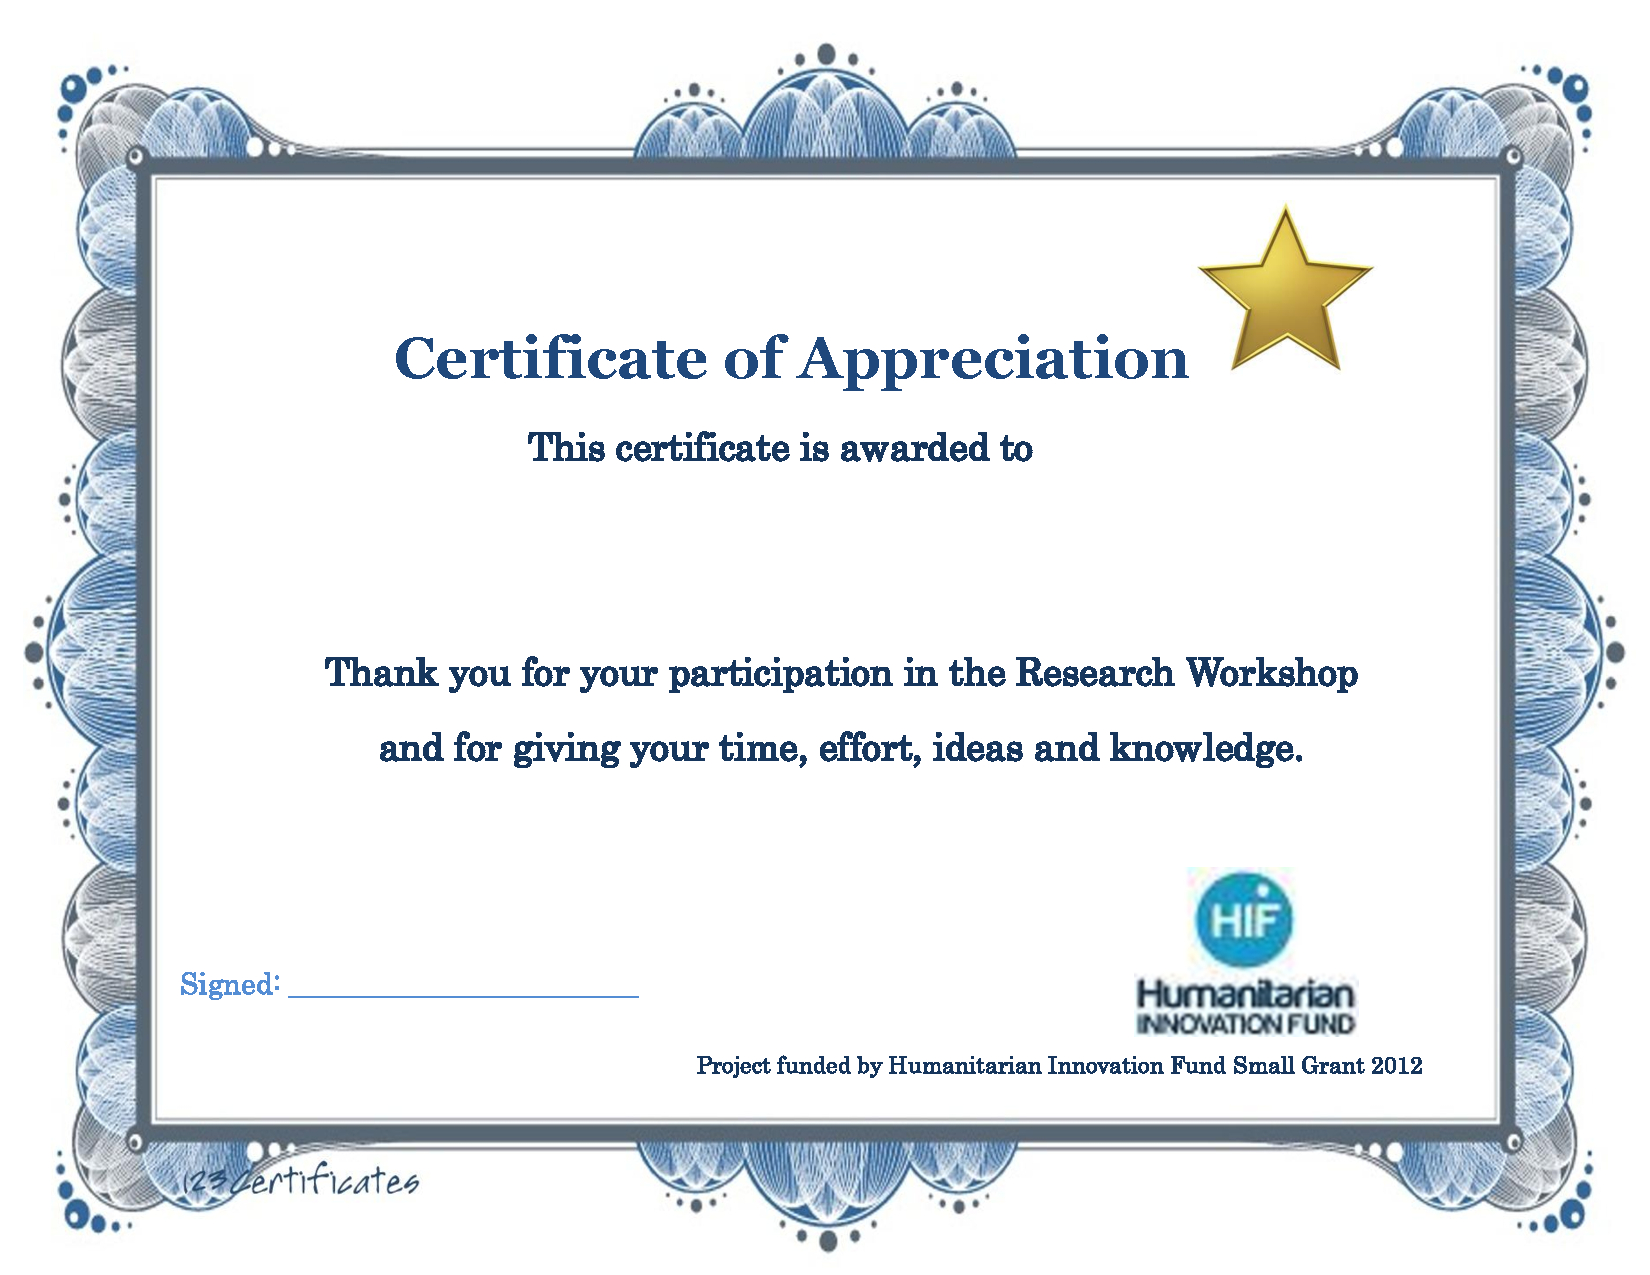 Thank You Certificate Template | Certificate Templates Intended For Certificate Of Participation Word Template